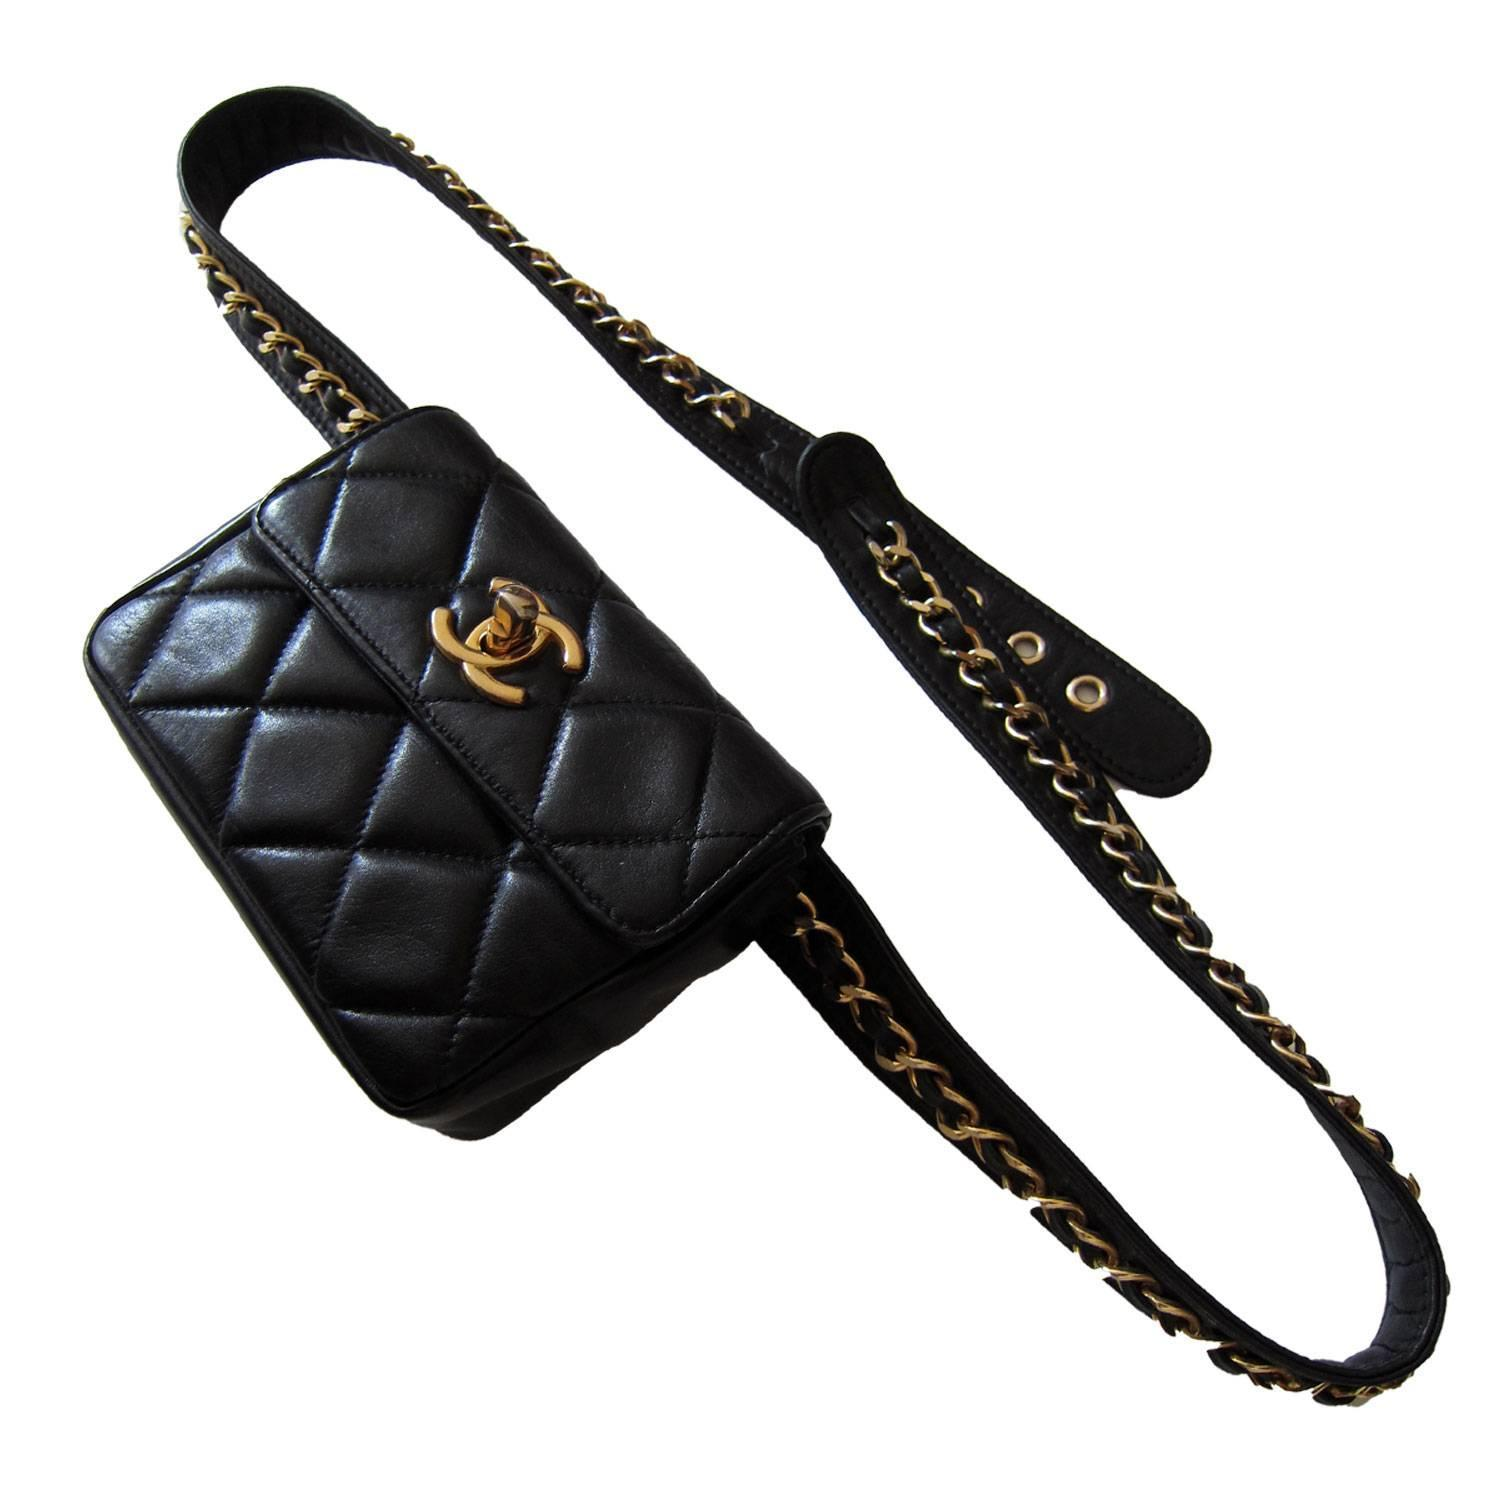 31f0cb9d3184 Chanel Chain Hook Belt Quilted Waist Bag Black Leather at 1stdibs